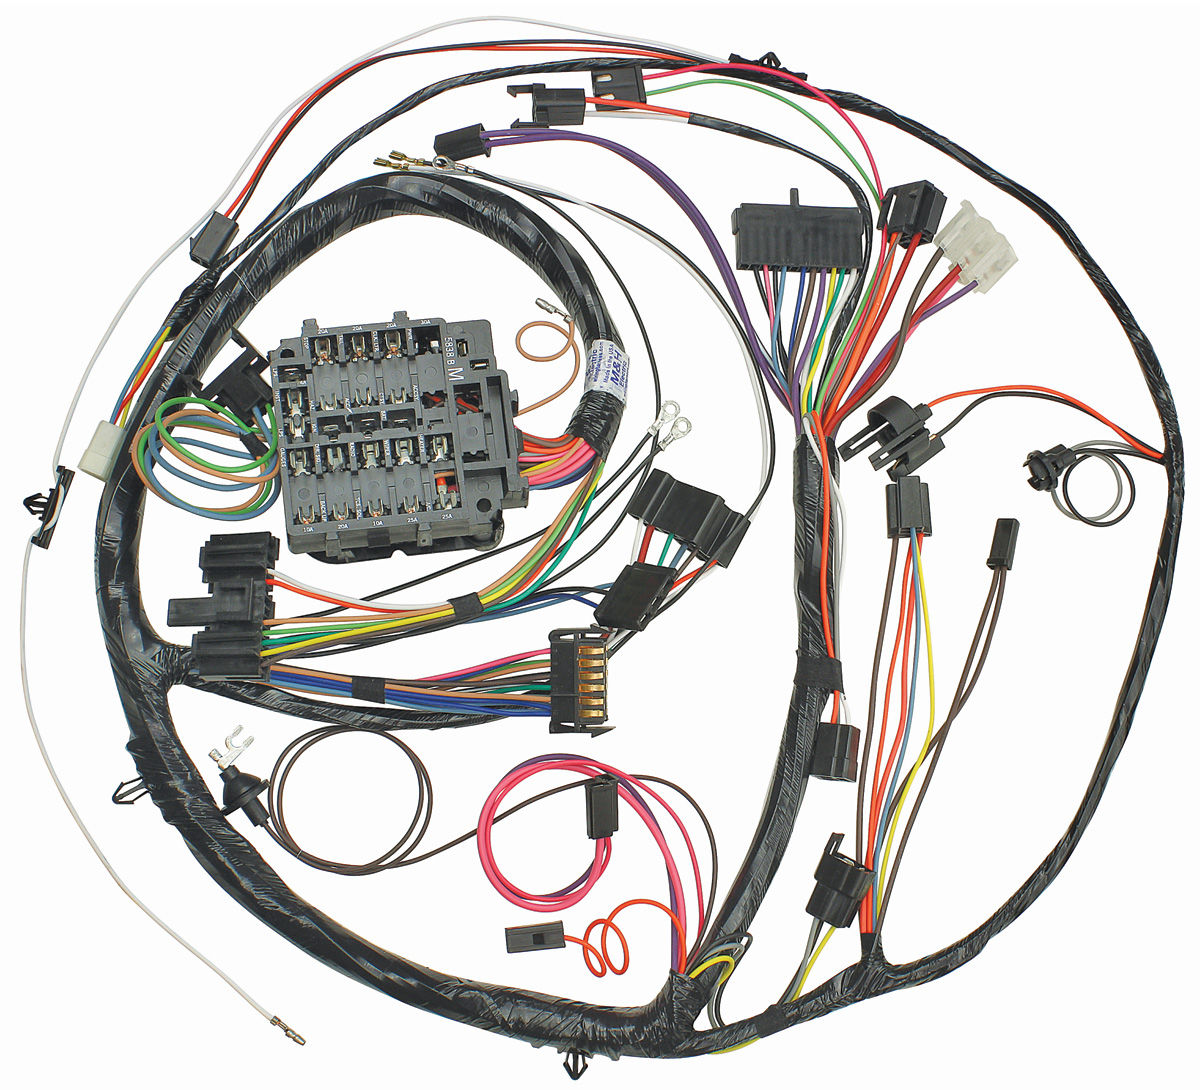 1972 monte carlo wiring harness